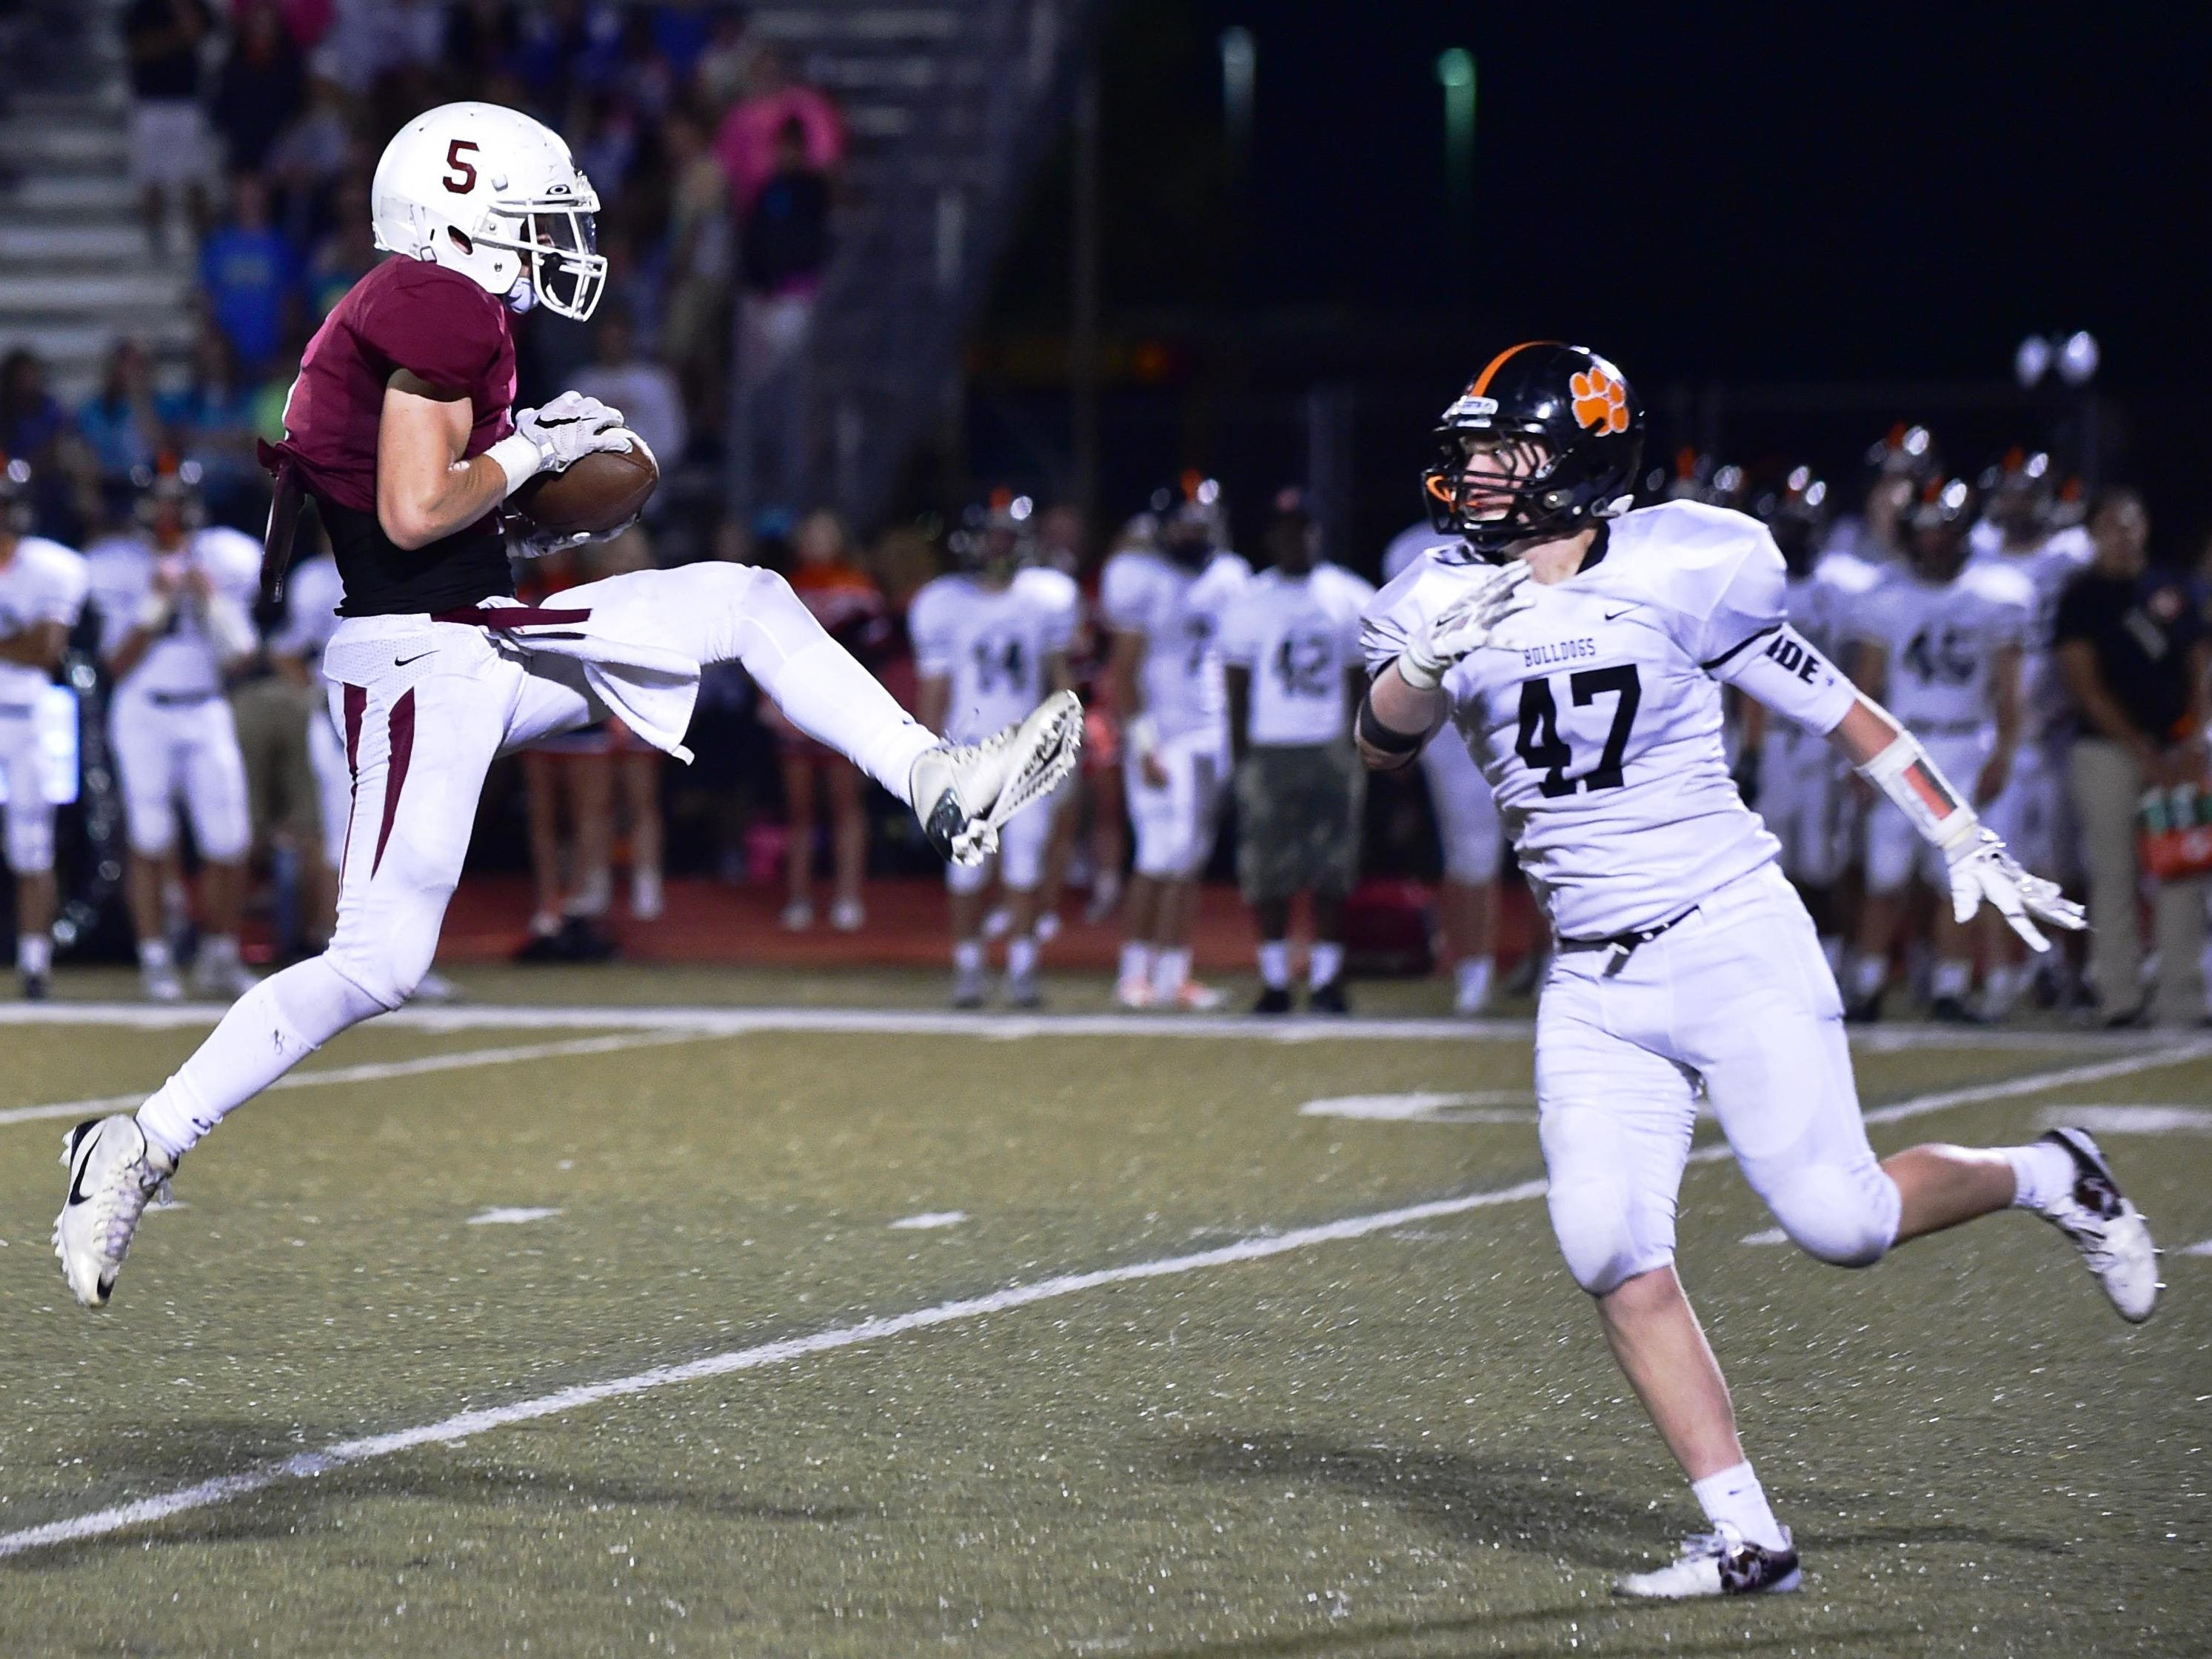 Milford's Logan Kahl (left) makes the catch in front of Brighton's Mike Redlinger.